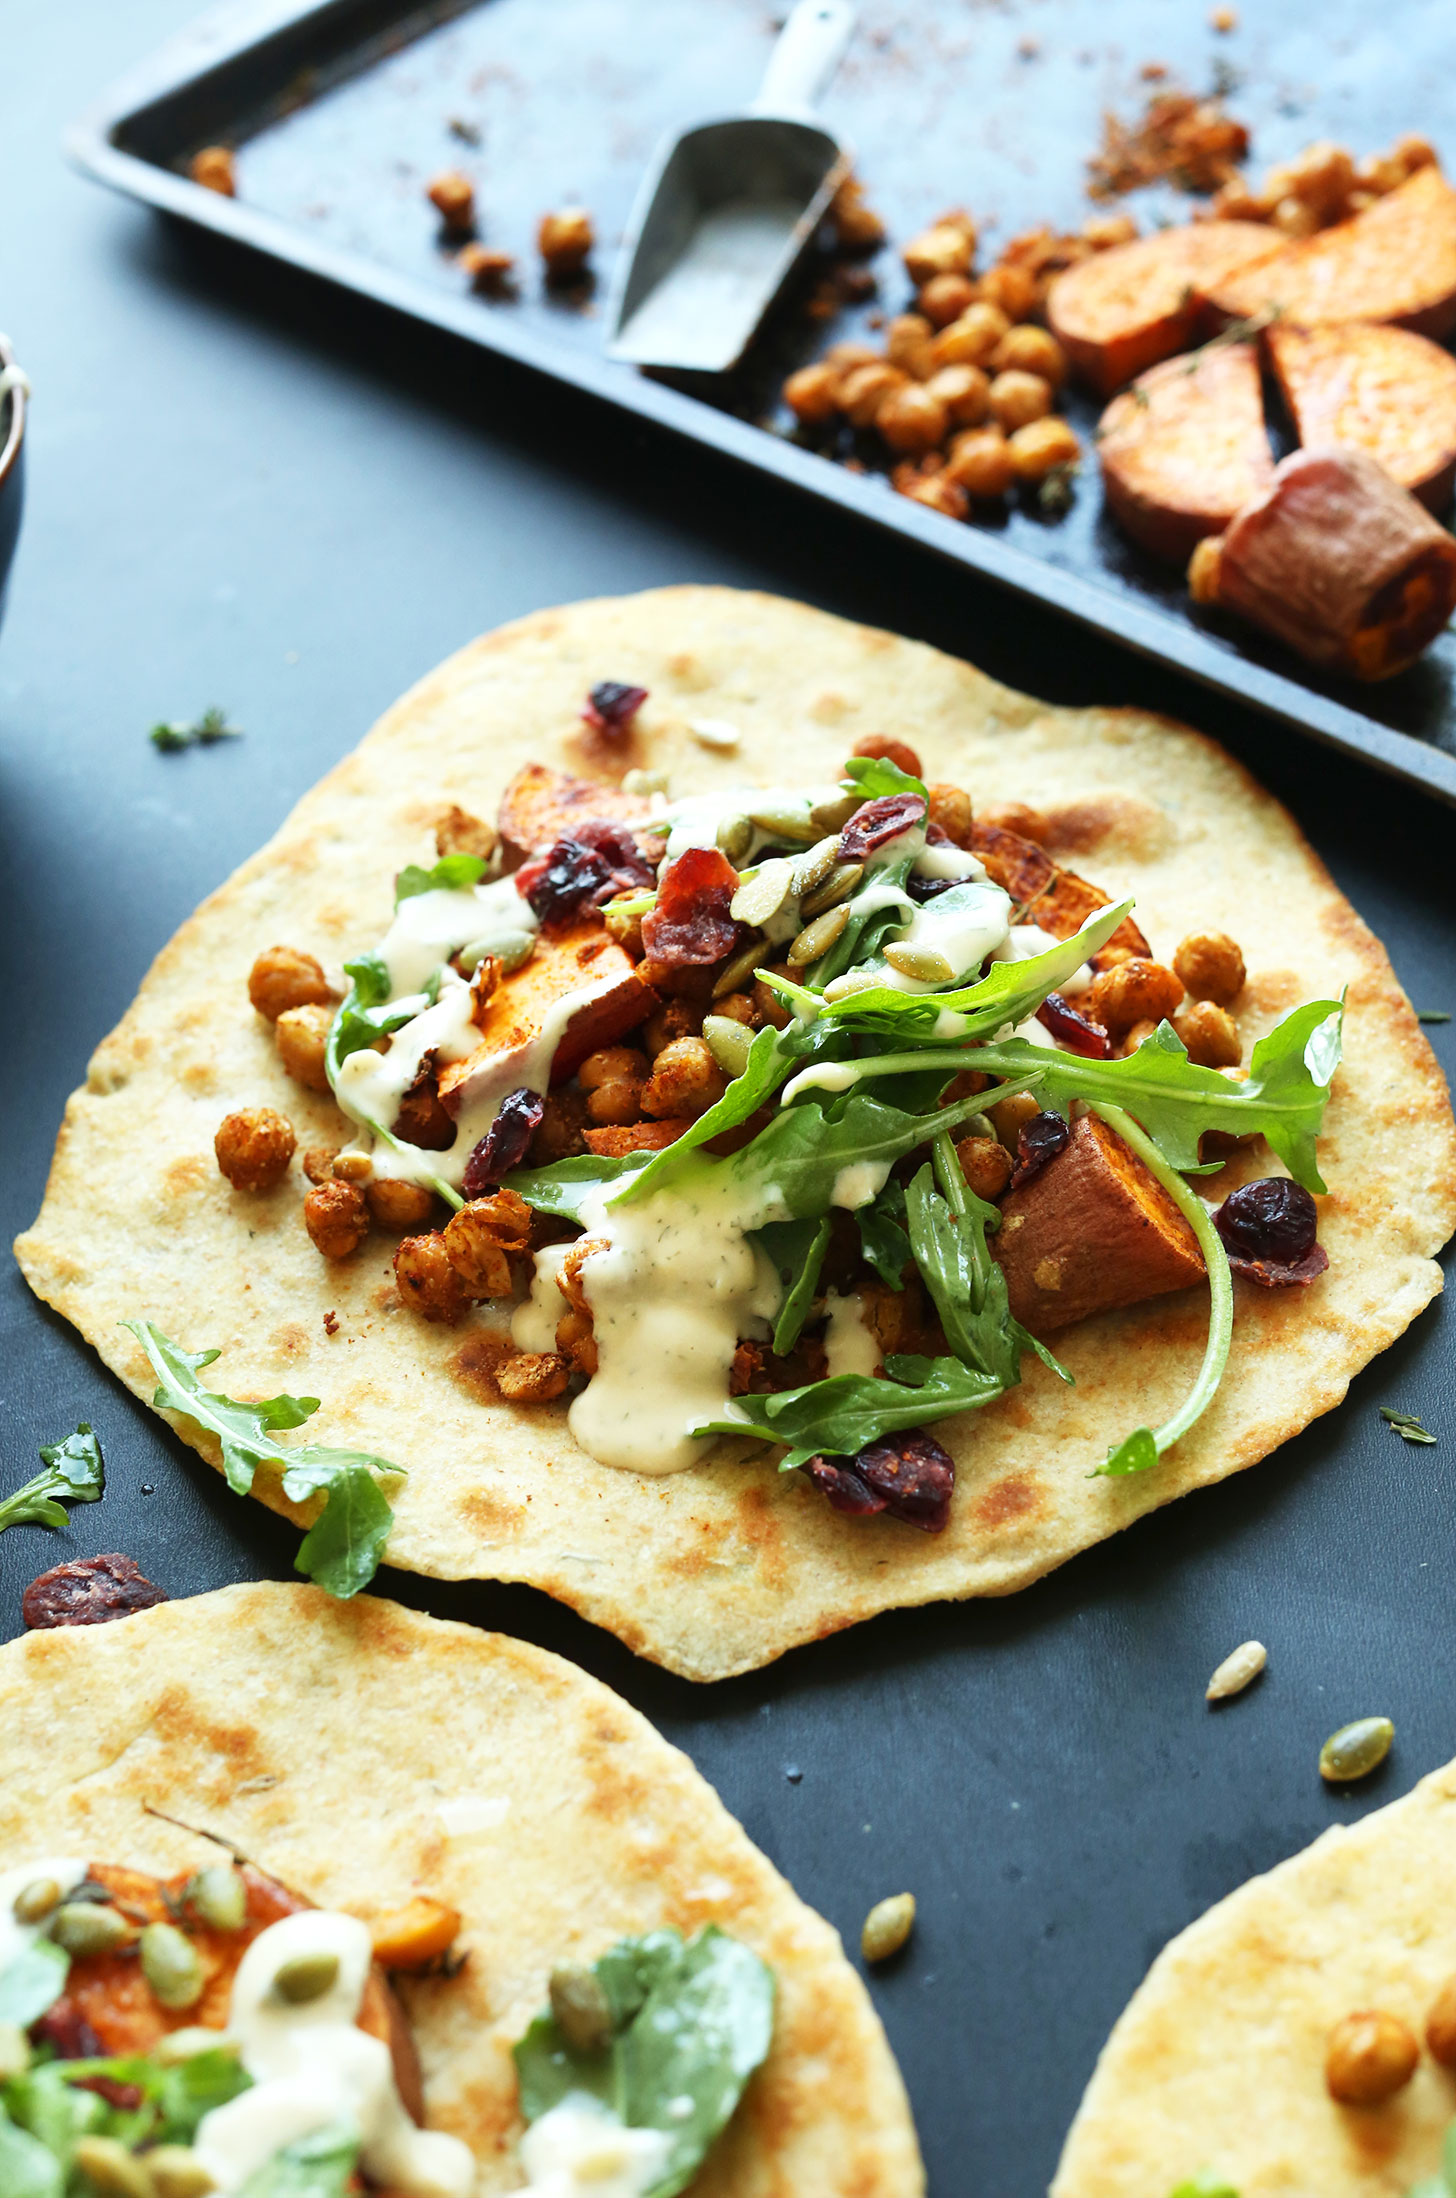 Making vegan Fall Bounty Thanksgiving Wraps for a healthy meal